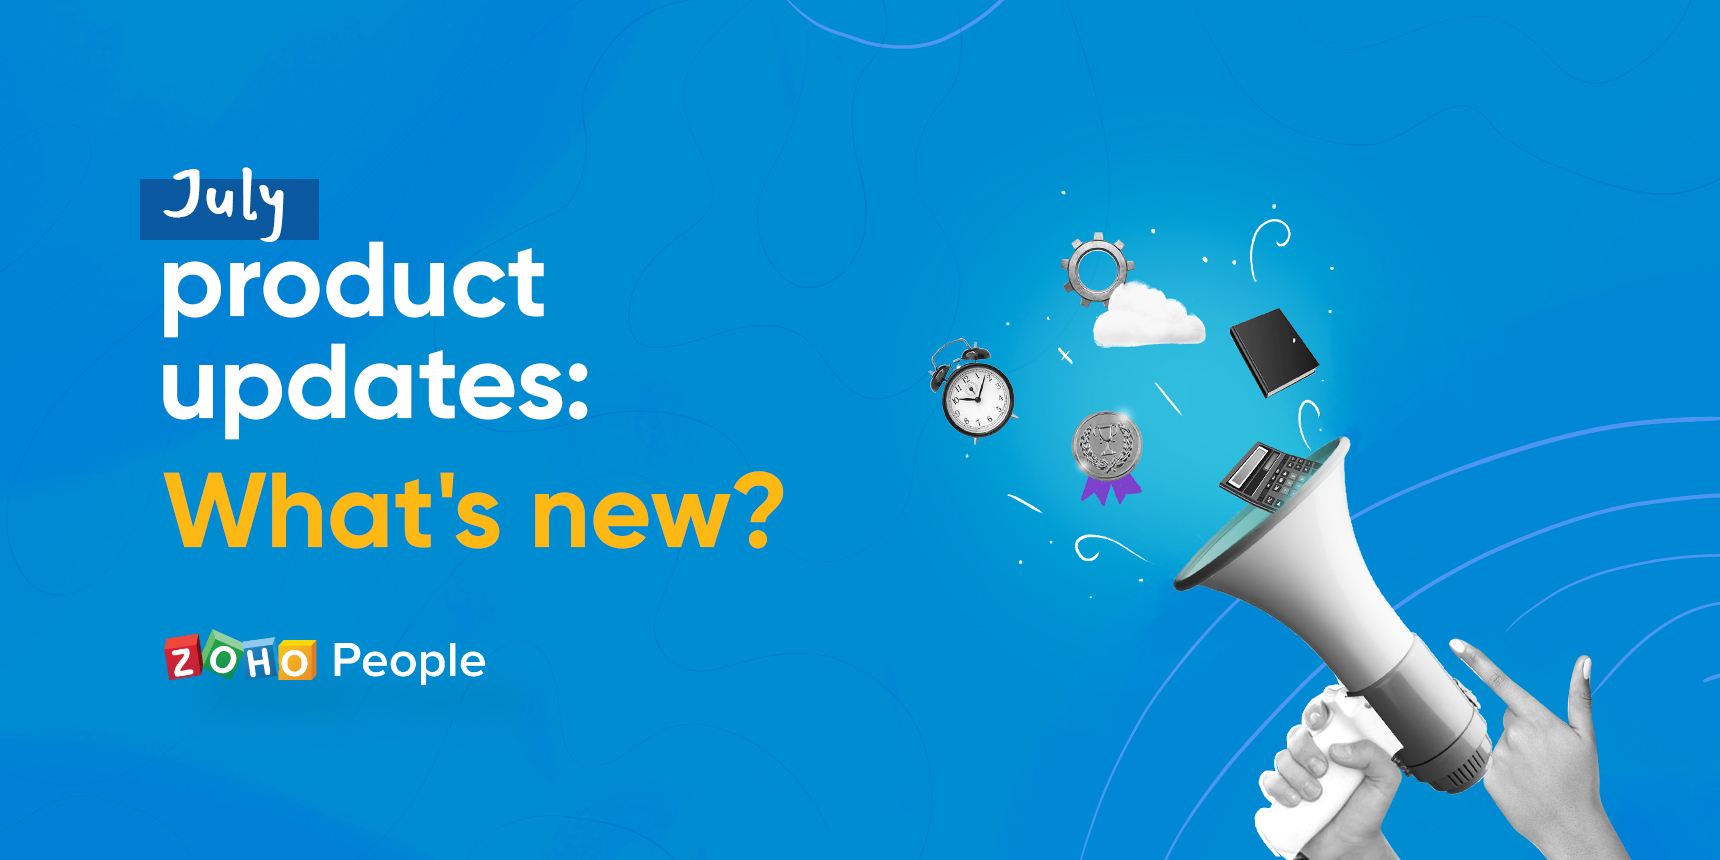 What's new with Zoho People: July product updates